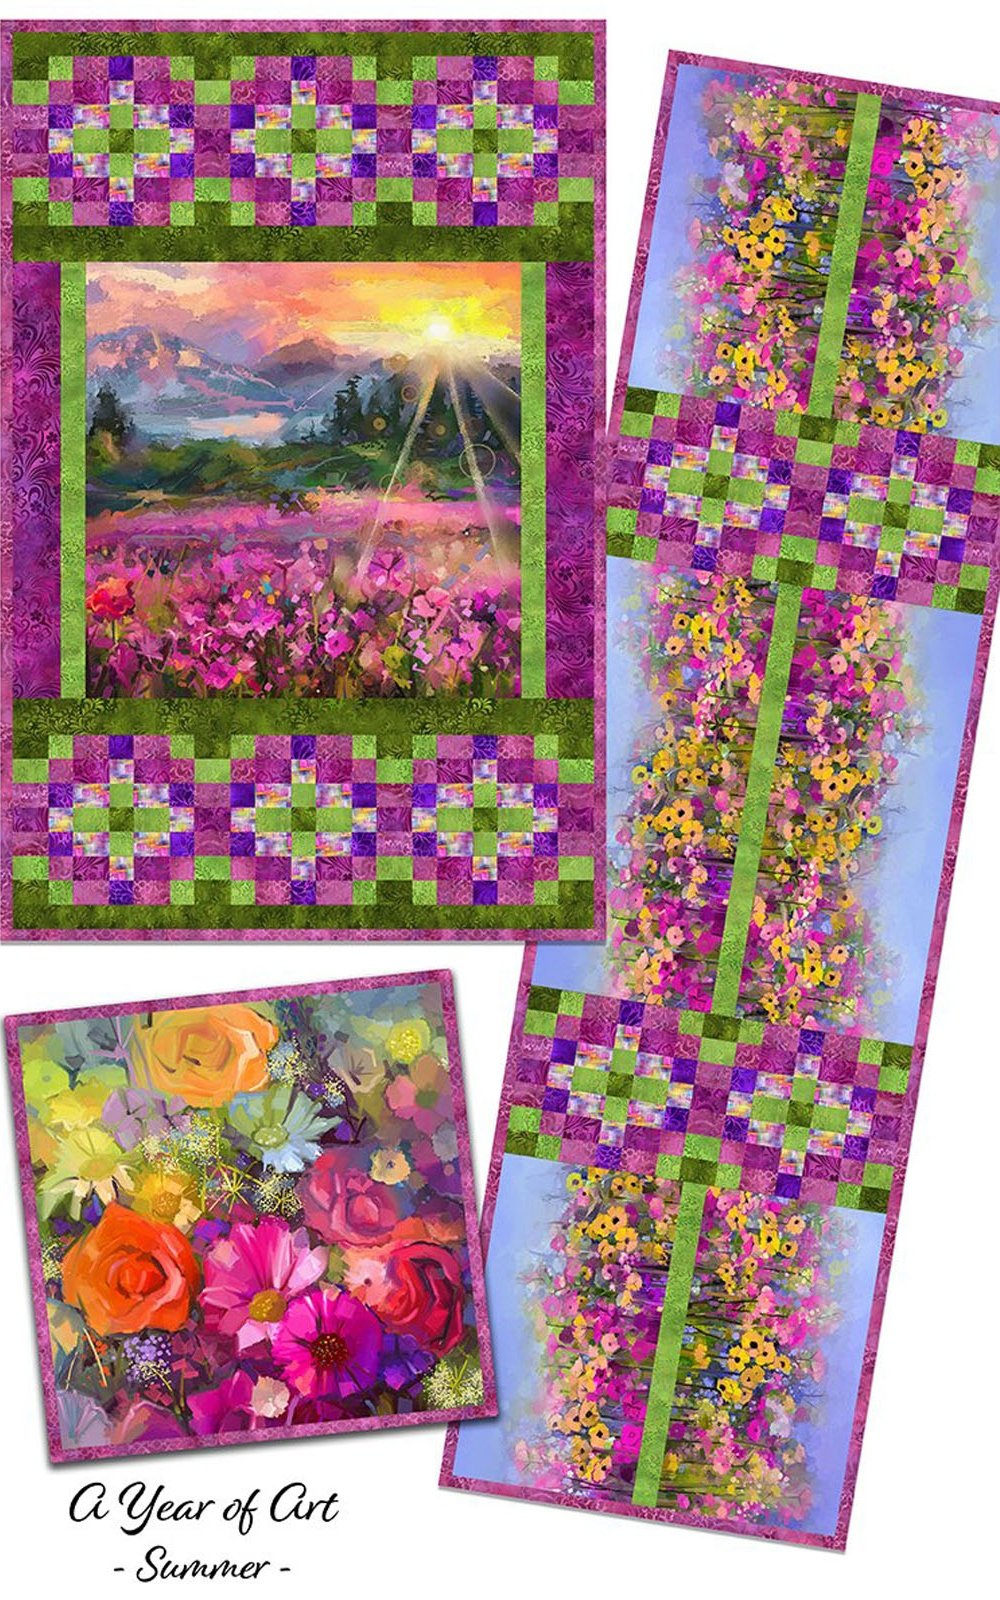 INTH-YOA SU PATT - A YEAR OF ART - SUMMER QUILT PATTERN - ARRIVING IN MAY 2022